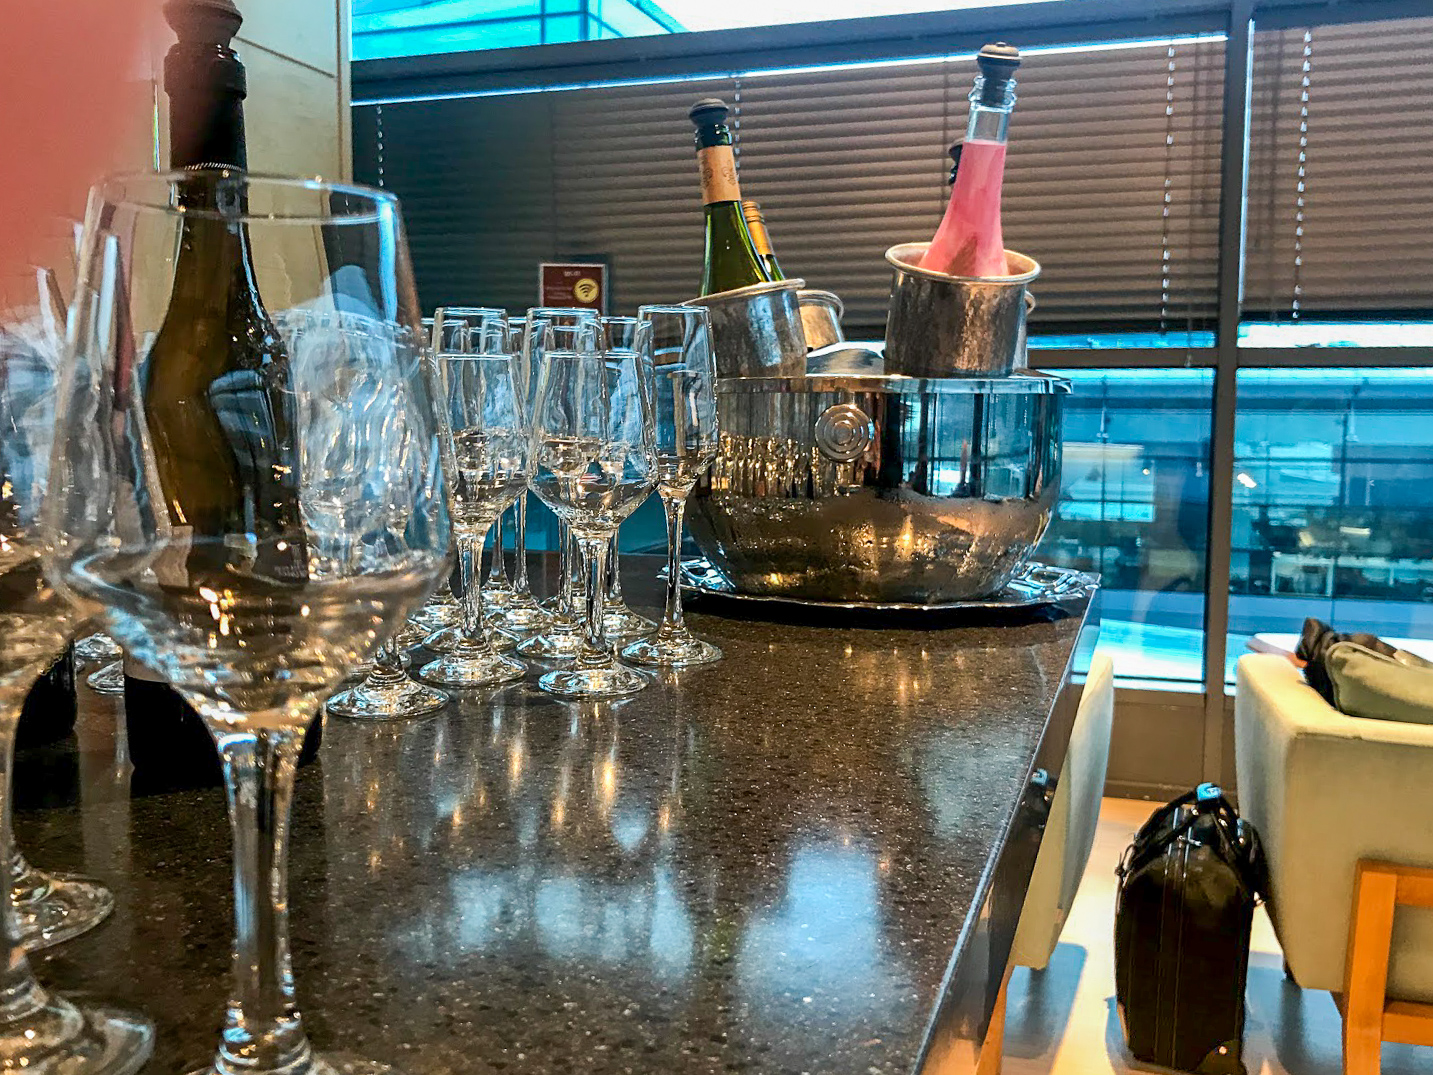 Sparkling wine in the Primeclass Business Lounge at Riga International Airport